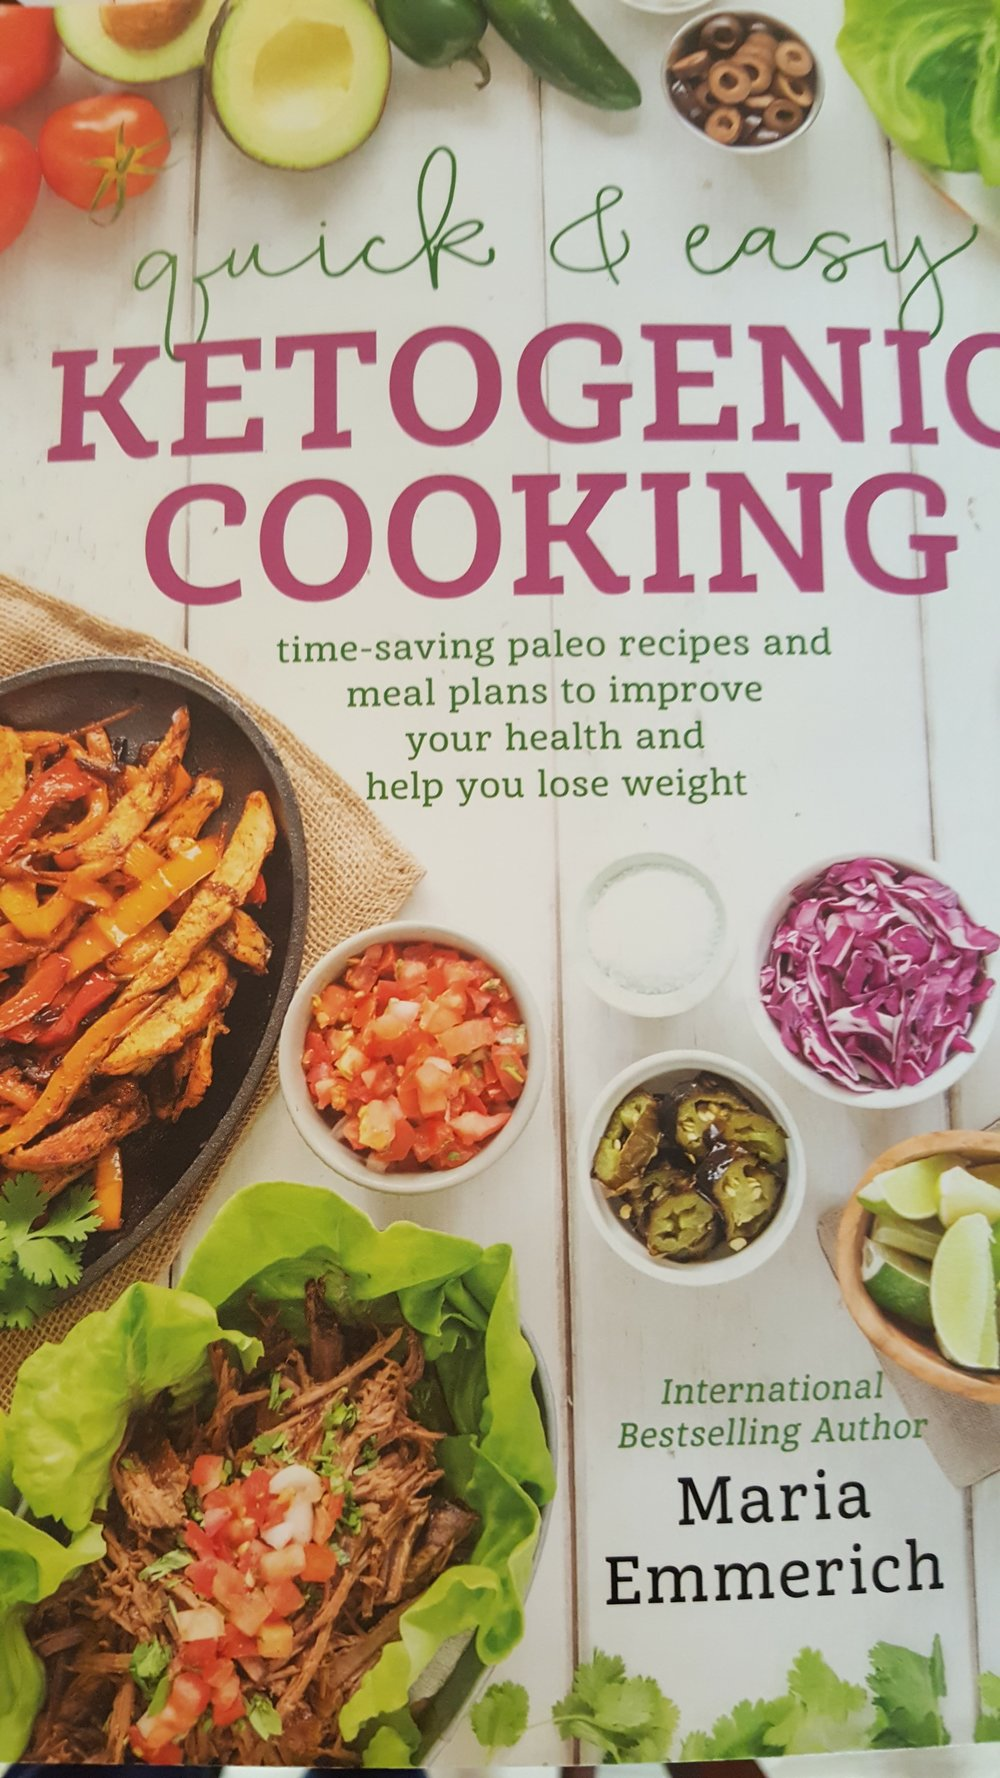 BIG FAN of this cookbook